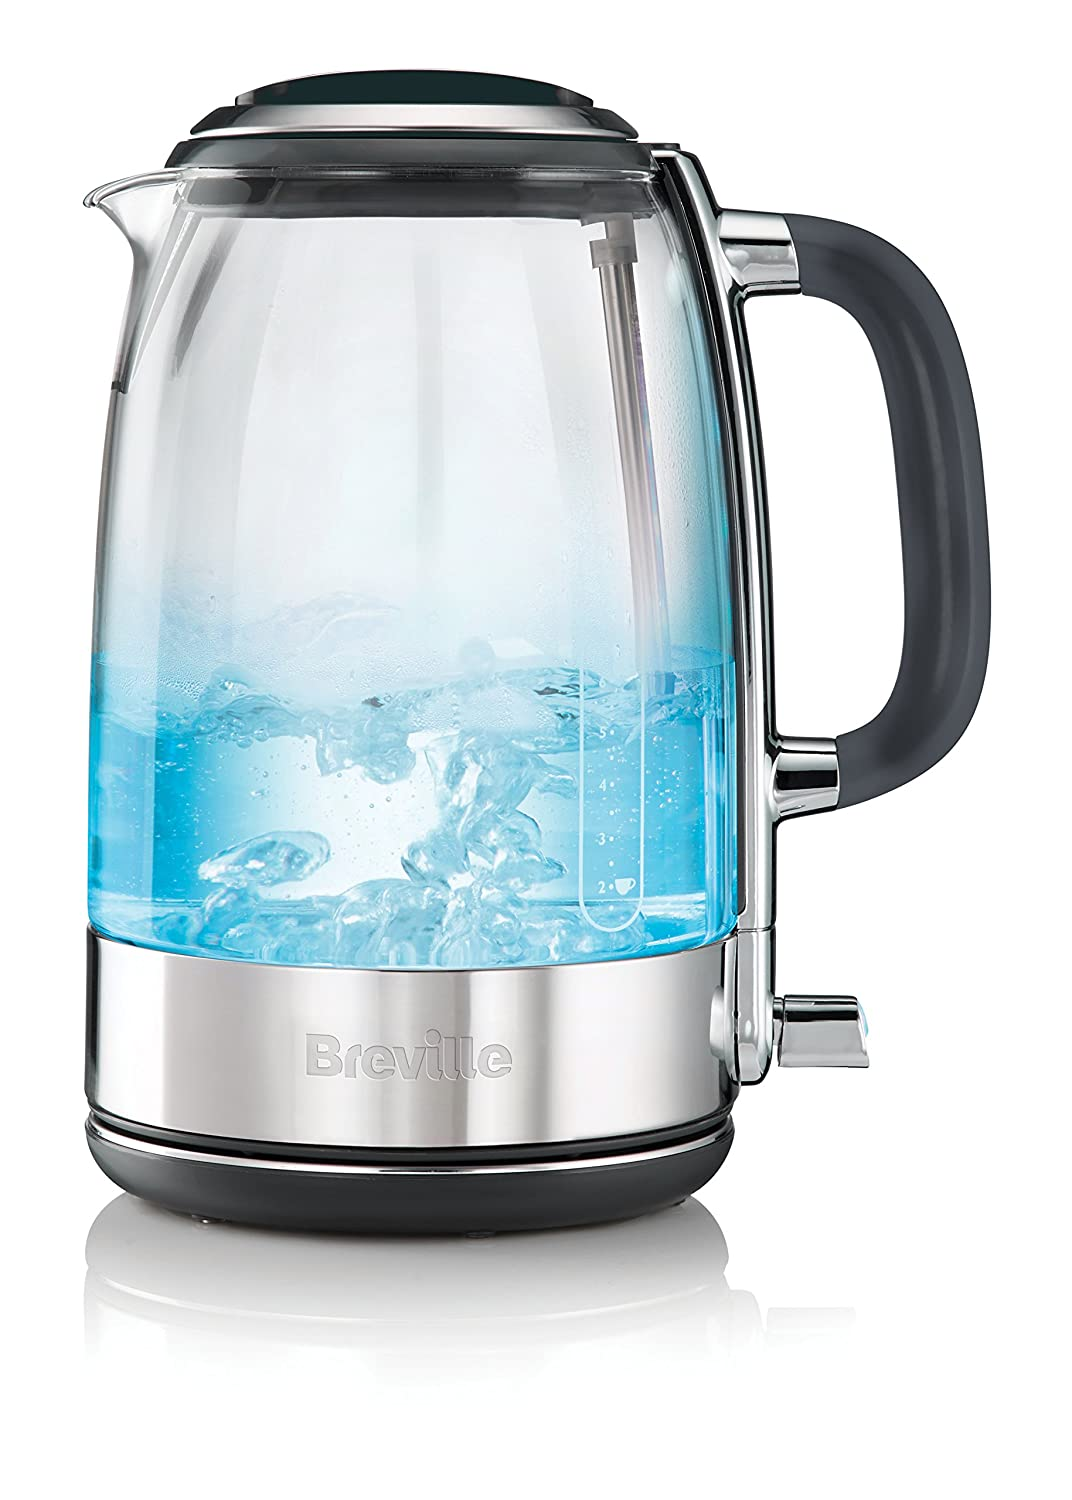 Breville VKT071 Glass Kettle Jarden Consumer Solutions